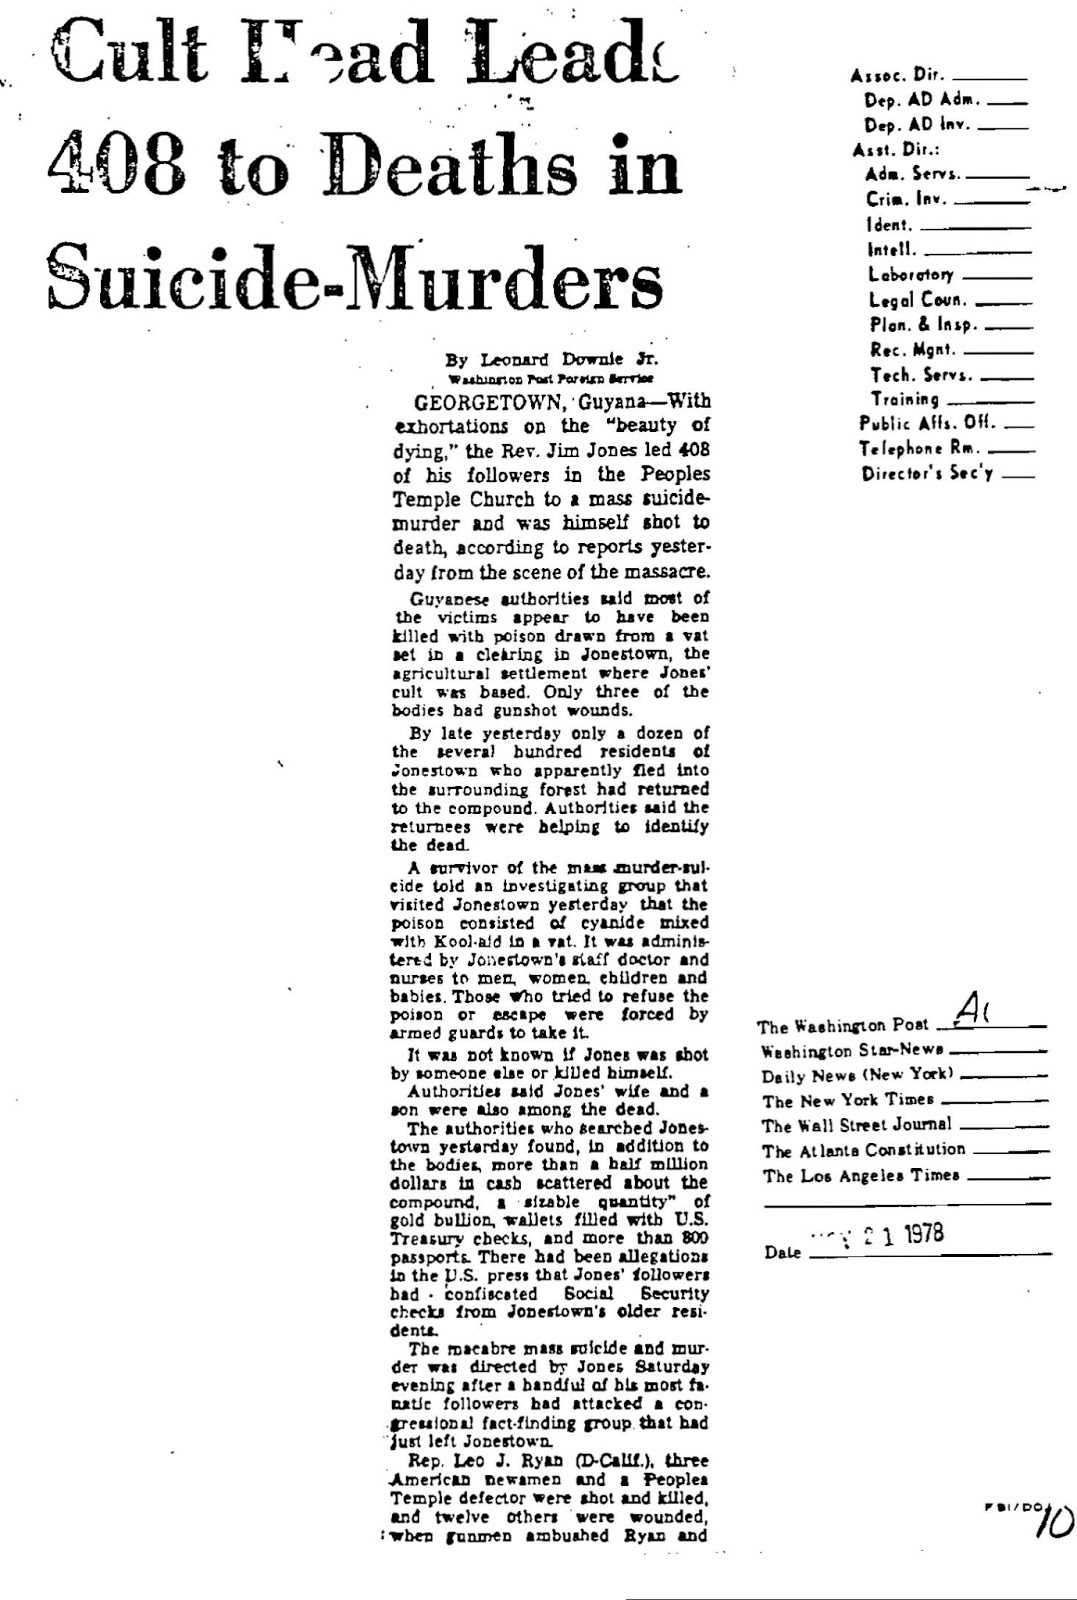 """a sociological perspective of the reverend jim jones instigated mass suicides On november 18, 1978, in what became known as the """"jonestown massacre,"""" more than 900 members of an american cult called the peoples temple died in a mass suicide-murder under the direction of their leader jim jones (1931-78)."""